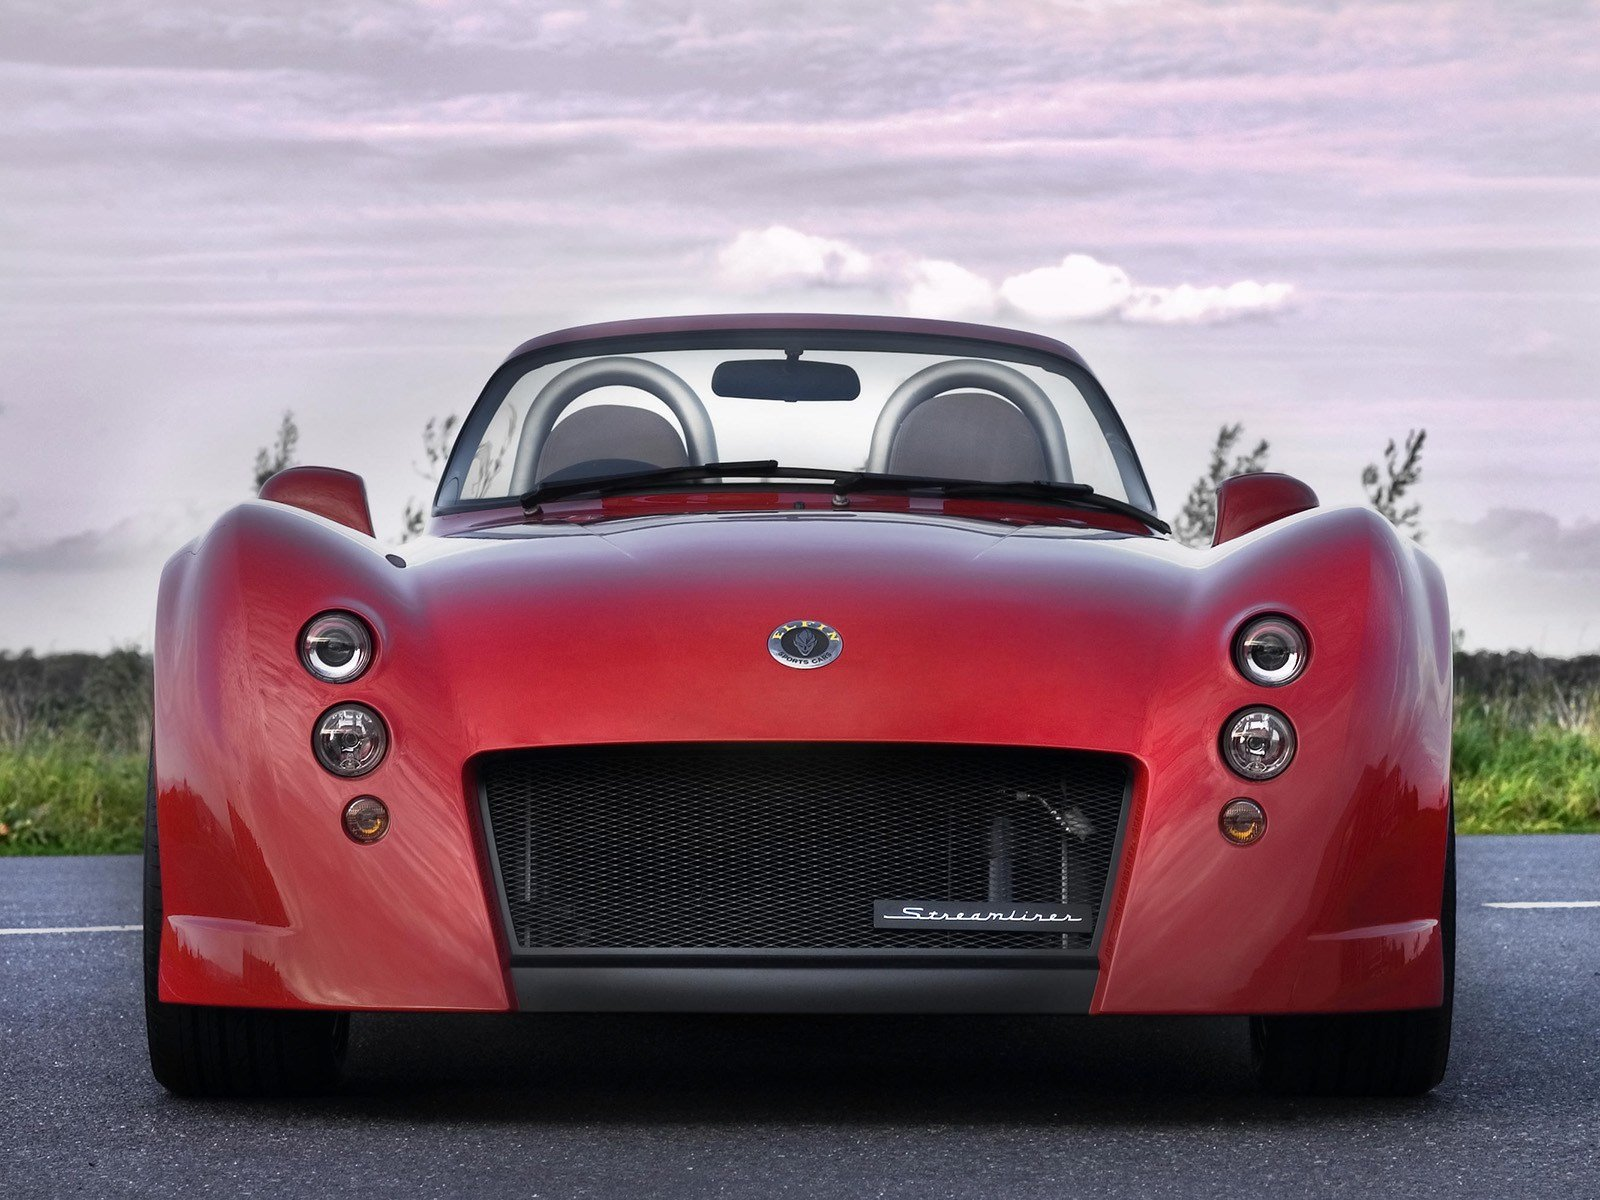 New 2007 Elfin Ms8 Streamliner Supercars Net On This Month